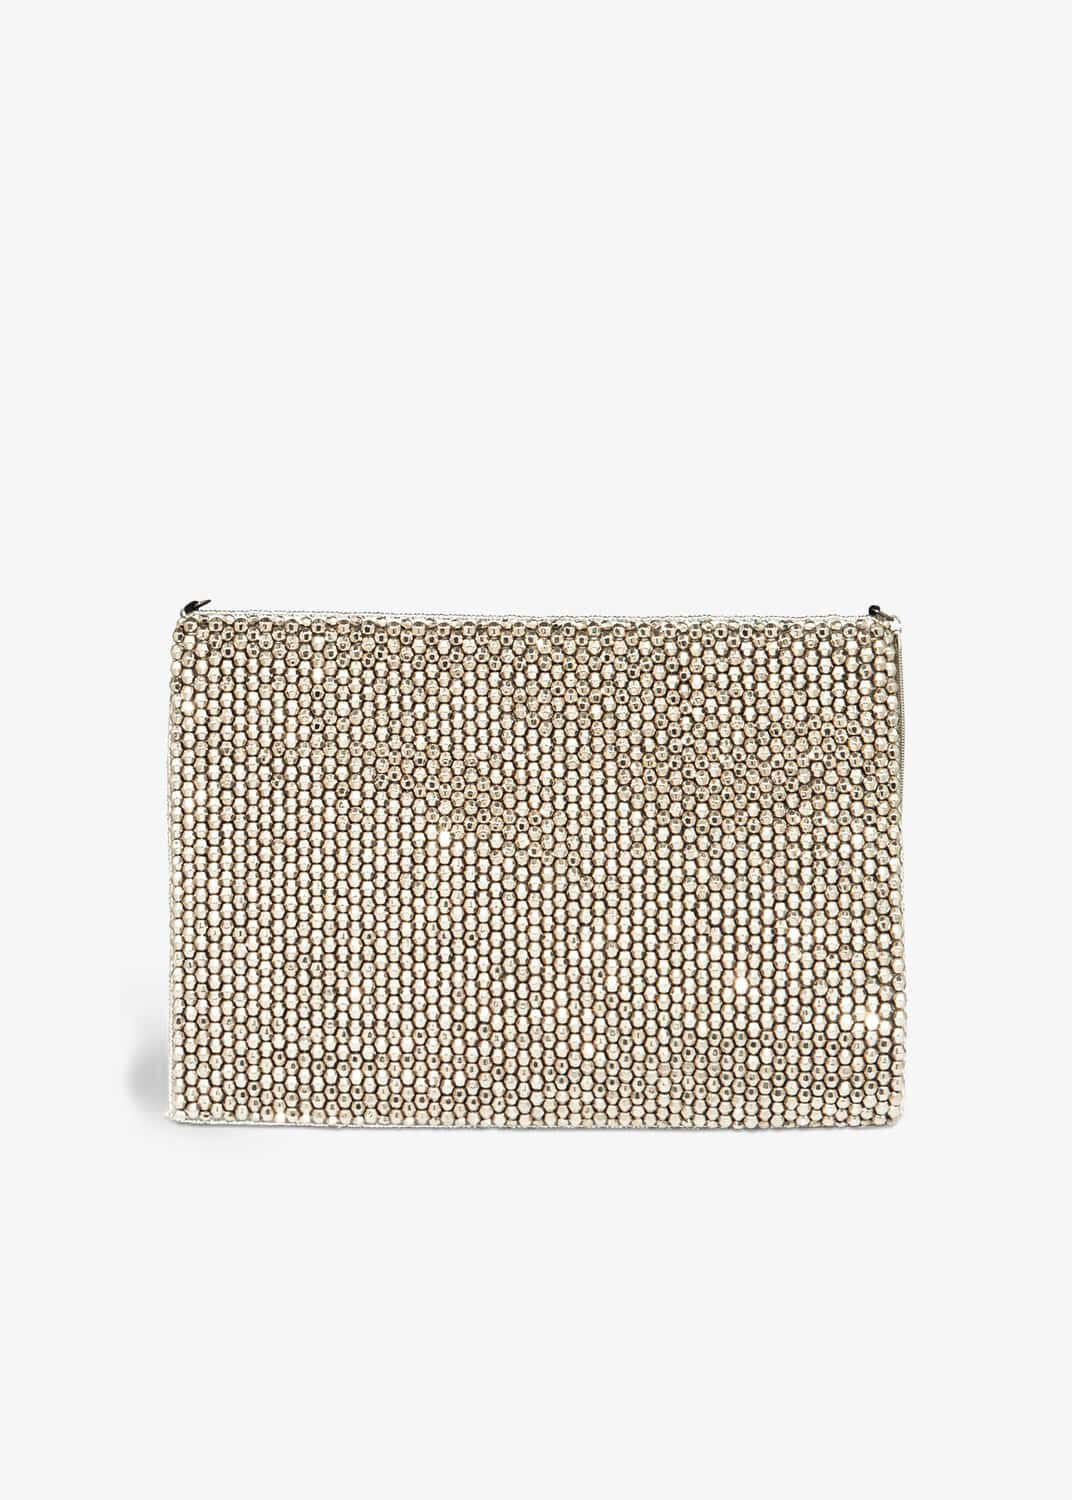 Phase Eight Luna Beaded Clutch Bag, Grey, Bag